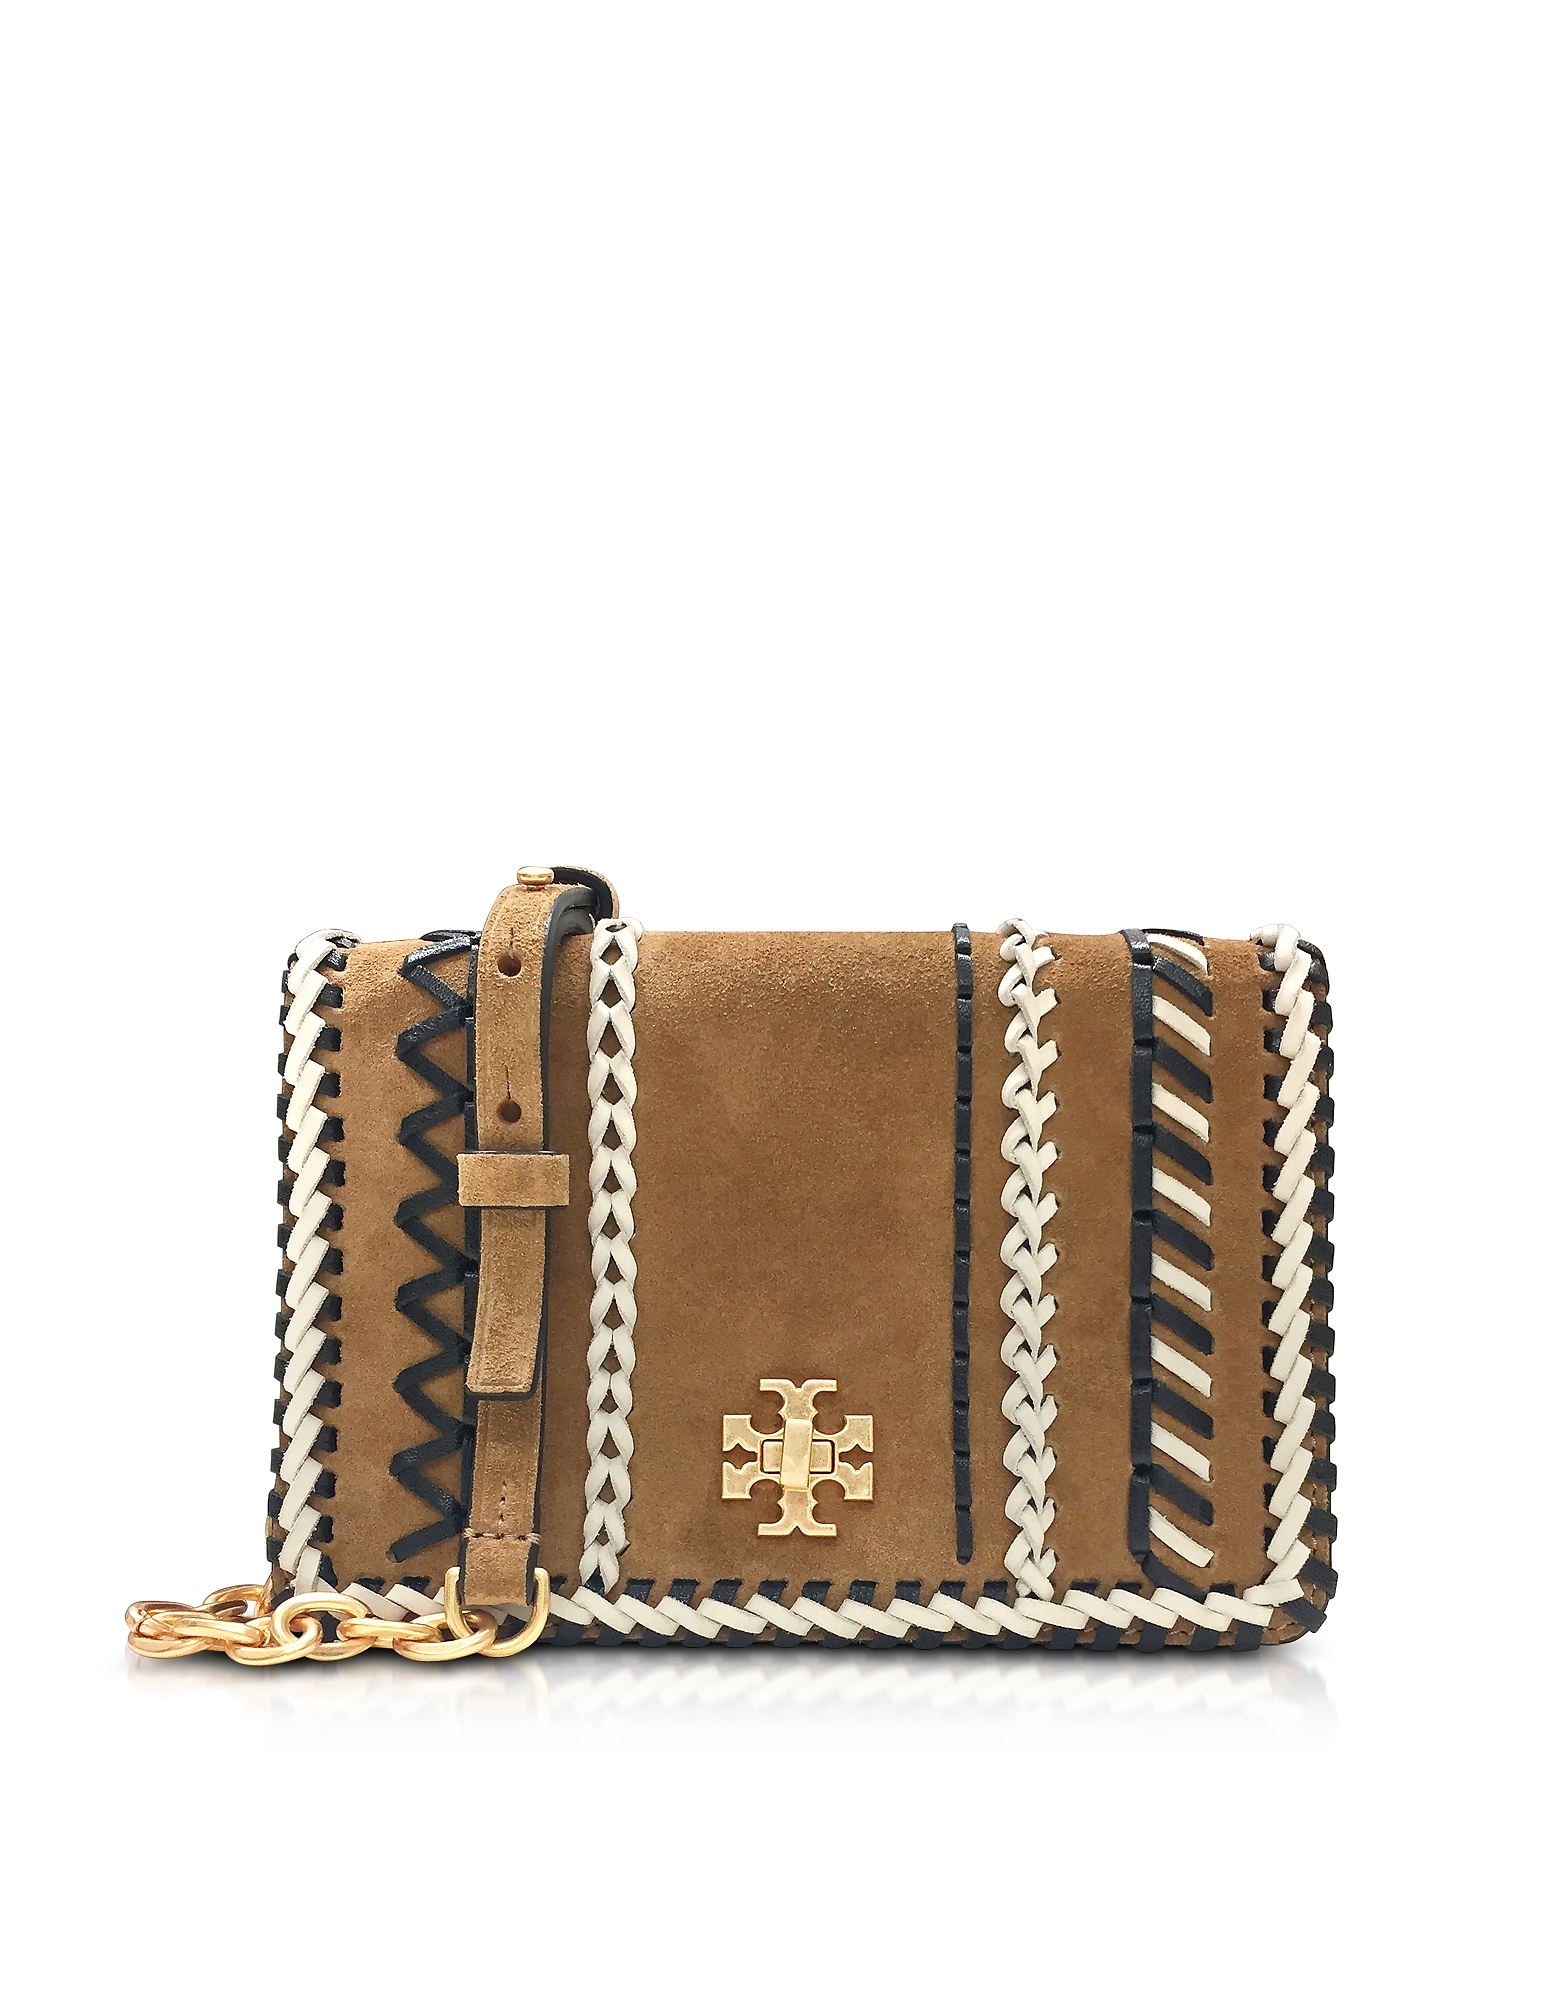 Tory Burch Handbags, Kira Whipstitch Hazel Suede Mini Crossbody Bag